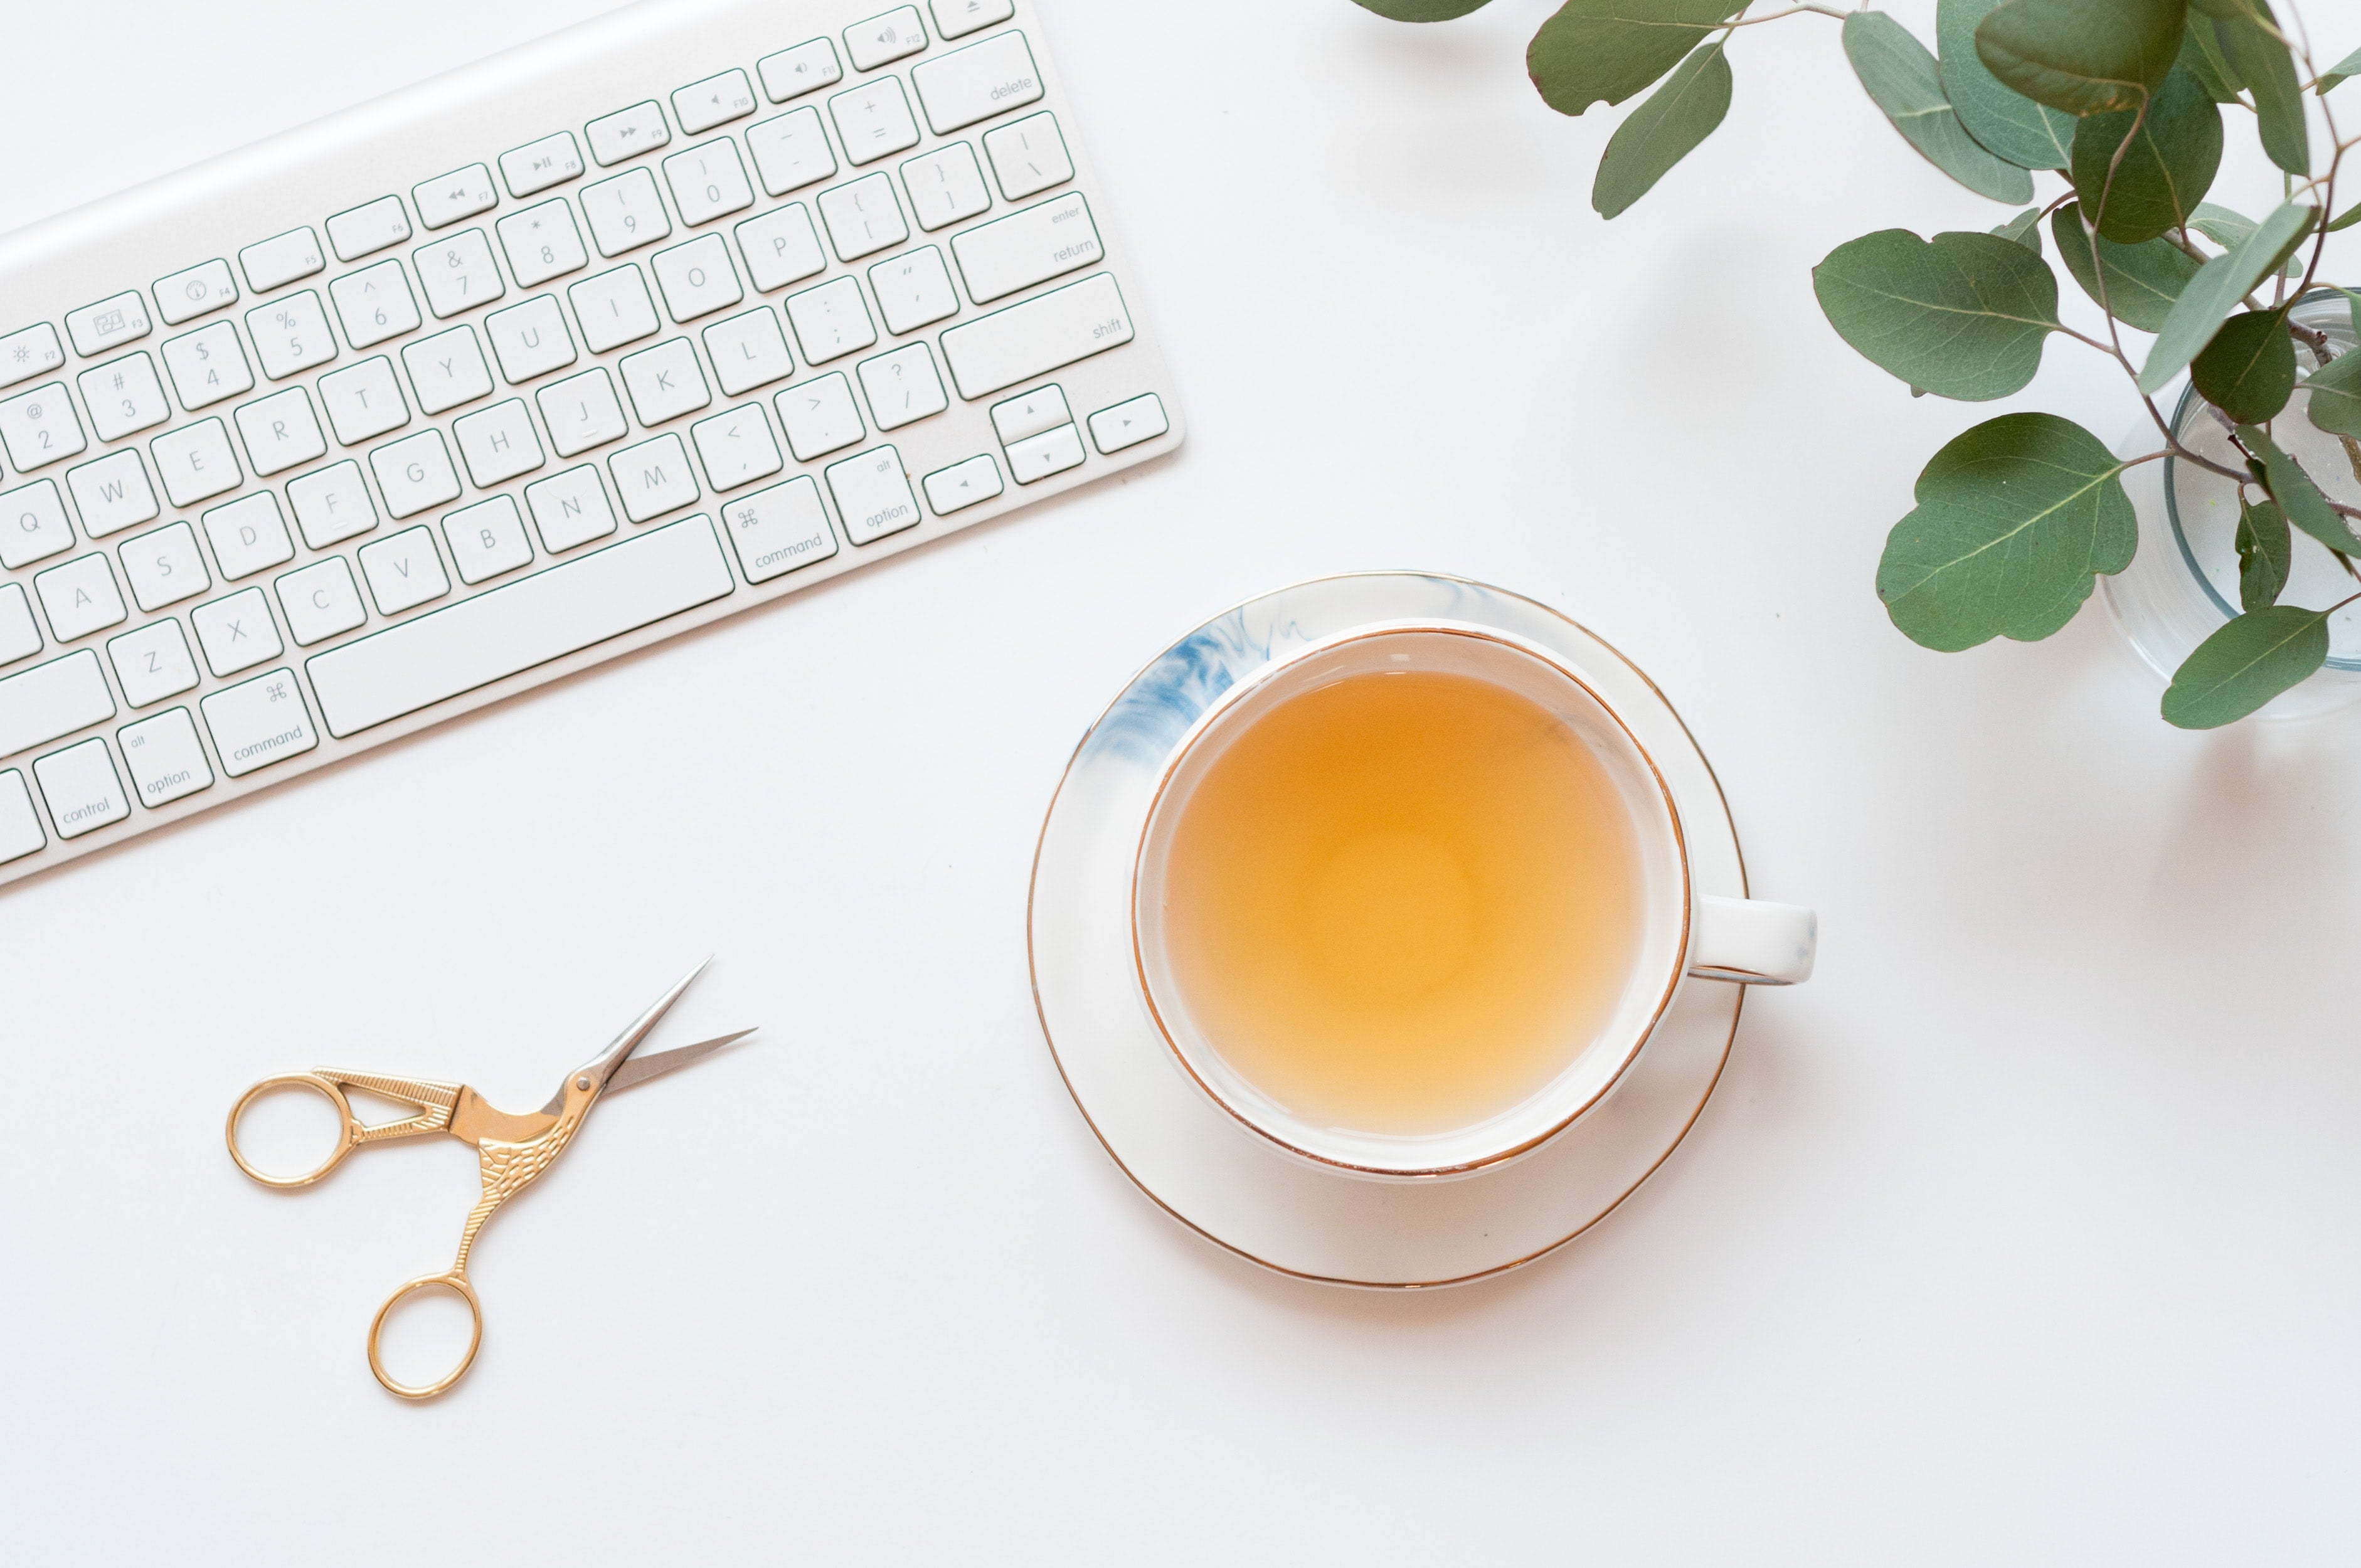 yellow tea in cup next to keyboard and plant